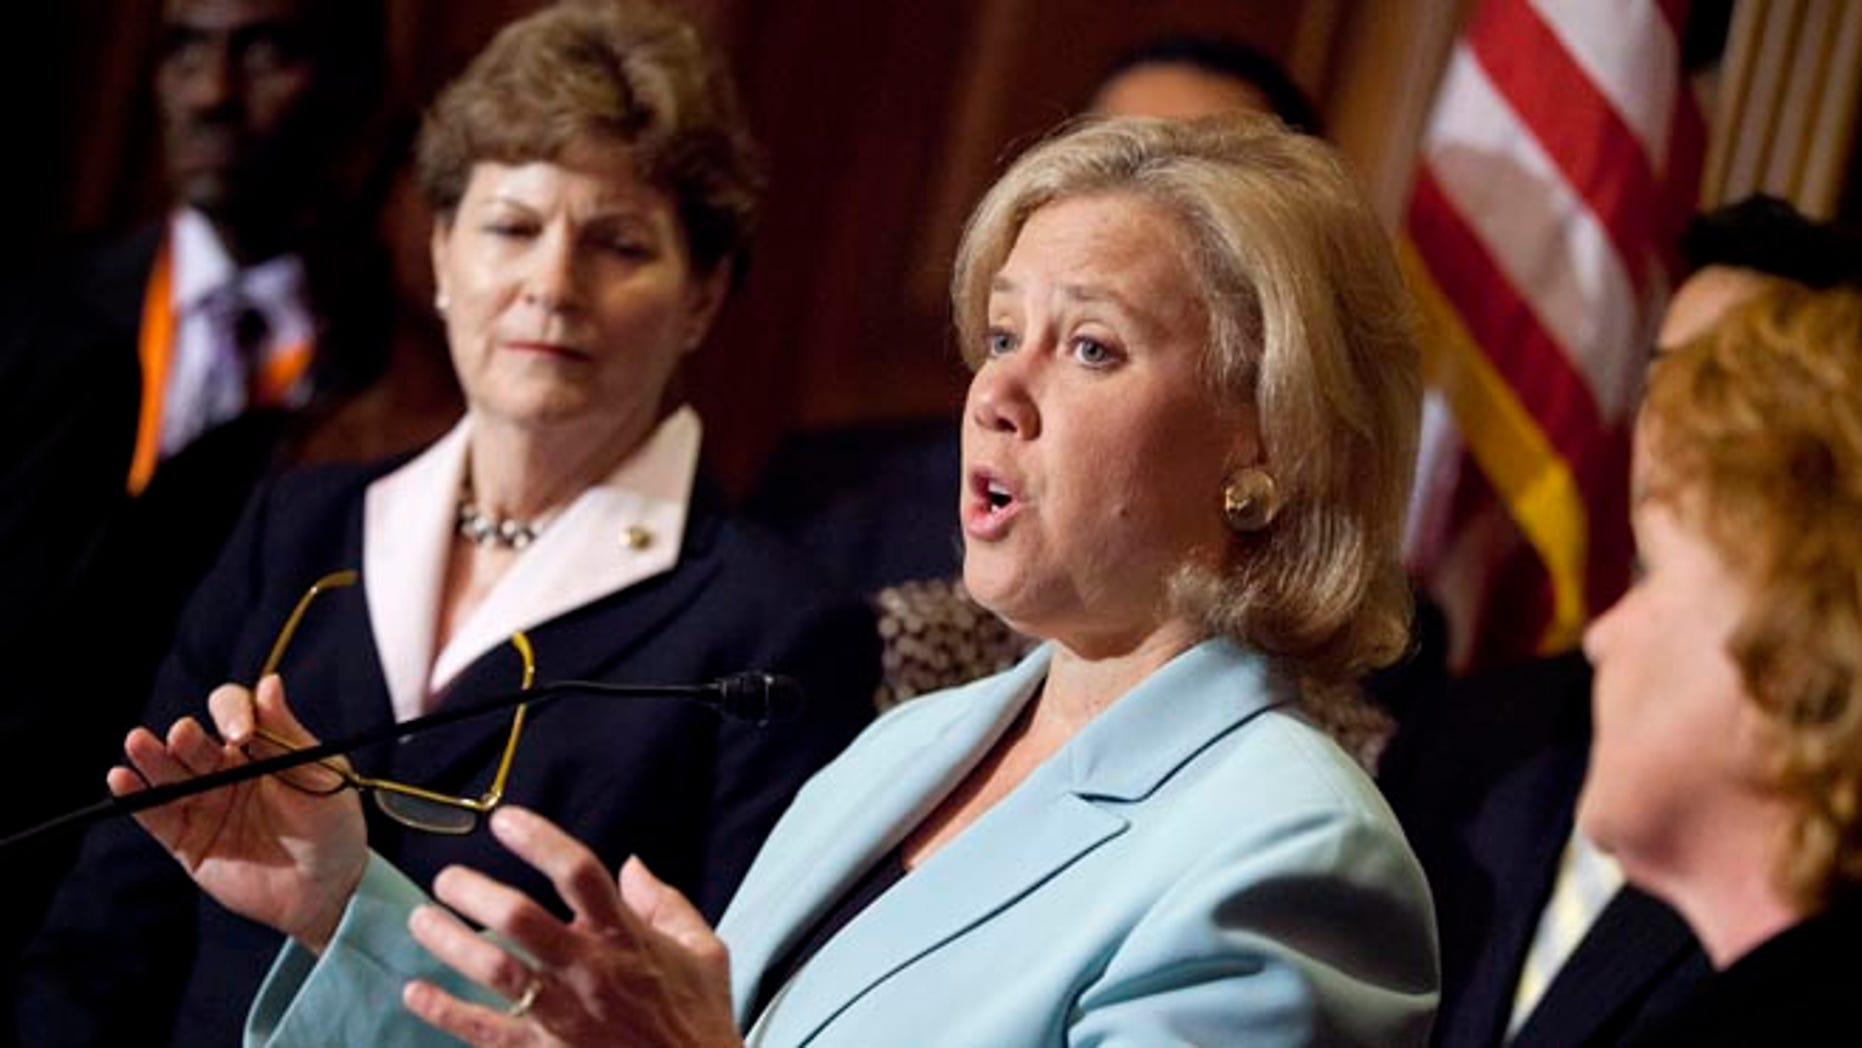 Oct. 3, 2013: Sen. Mary Landrieu, D-La., center, joined by Sen. Jeanne Shaheen, D-N.H., left, Sen. Heidi Heitkamp, D-N.D., right, she speaks during a news conference on Capitol Hill in Washington. (AP)